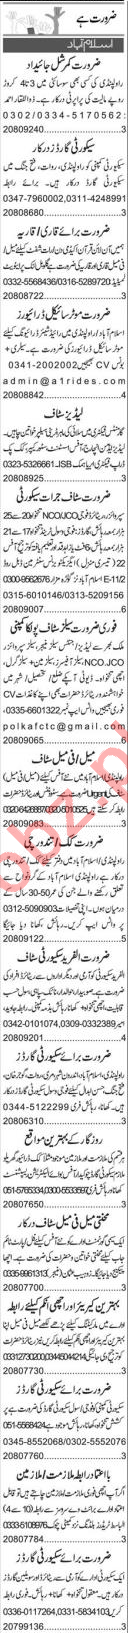 HR Officer & Assistant Supervisor Jobs 2021 in Islamabad